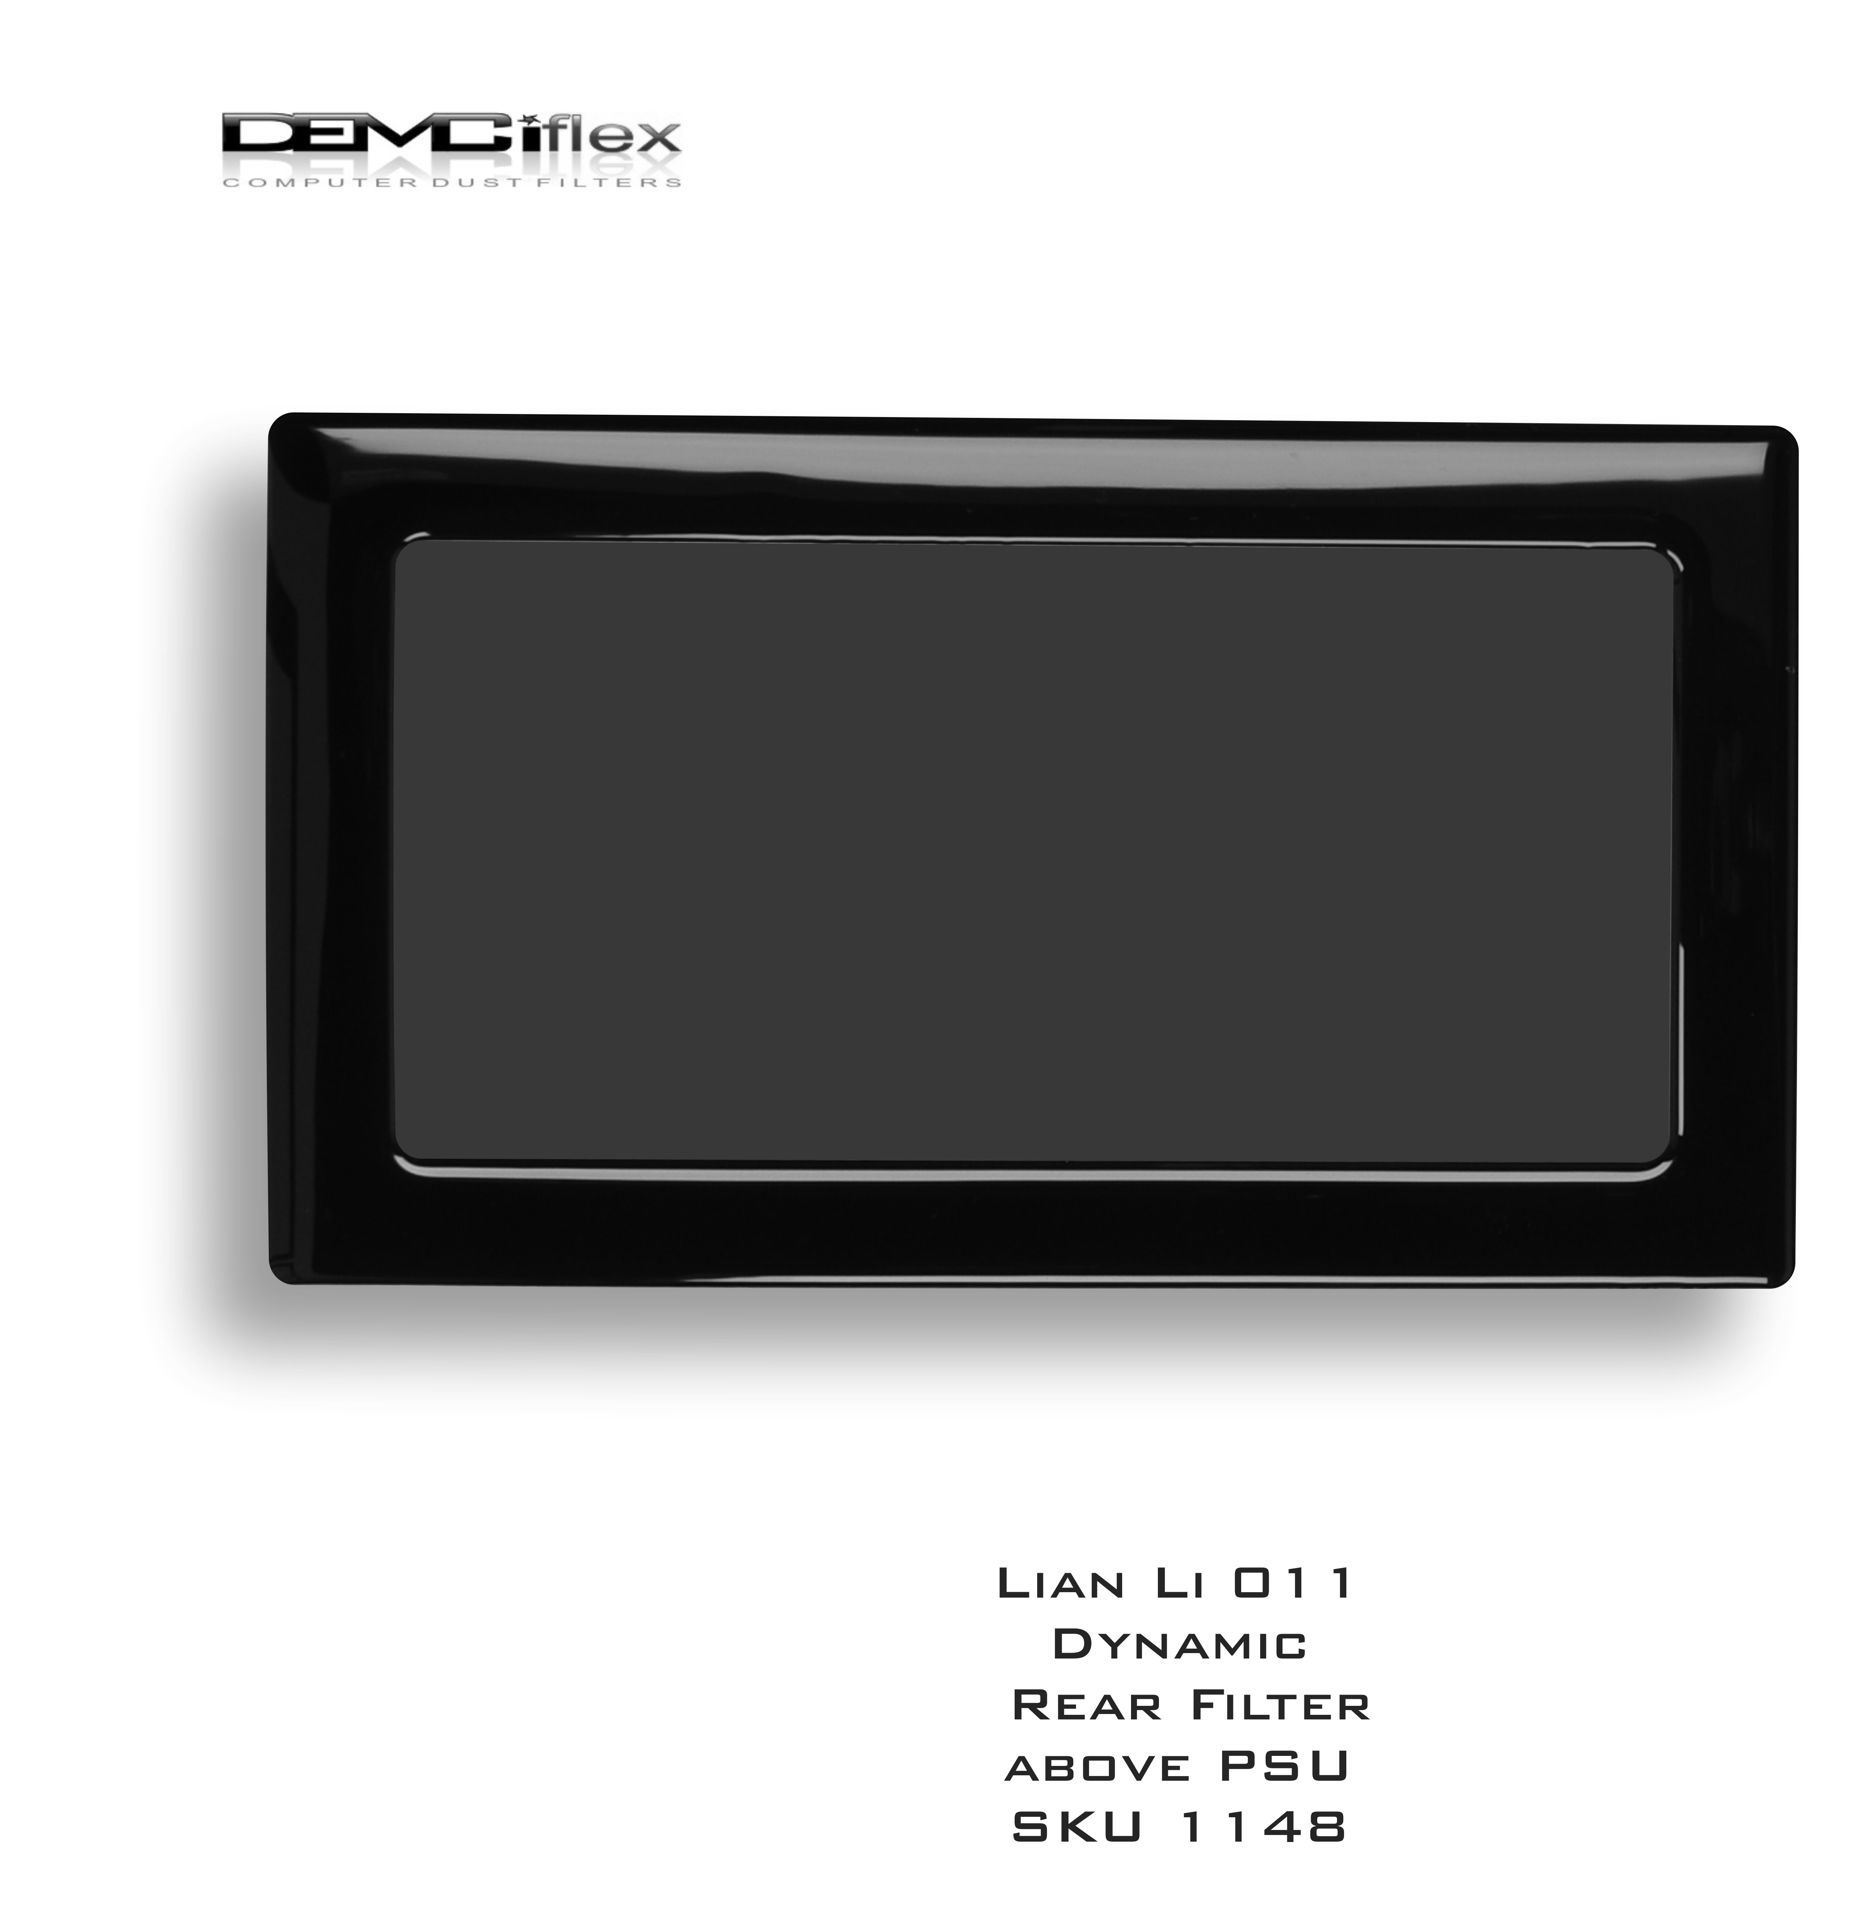 Picture of C1604 - 132mm x 65mm - Lian Li PC011 Dynamic Rear Vent above PSU Filter